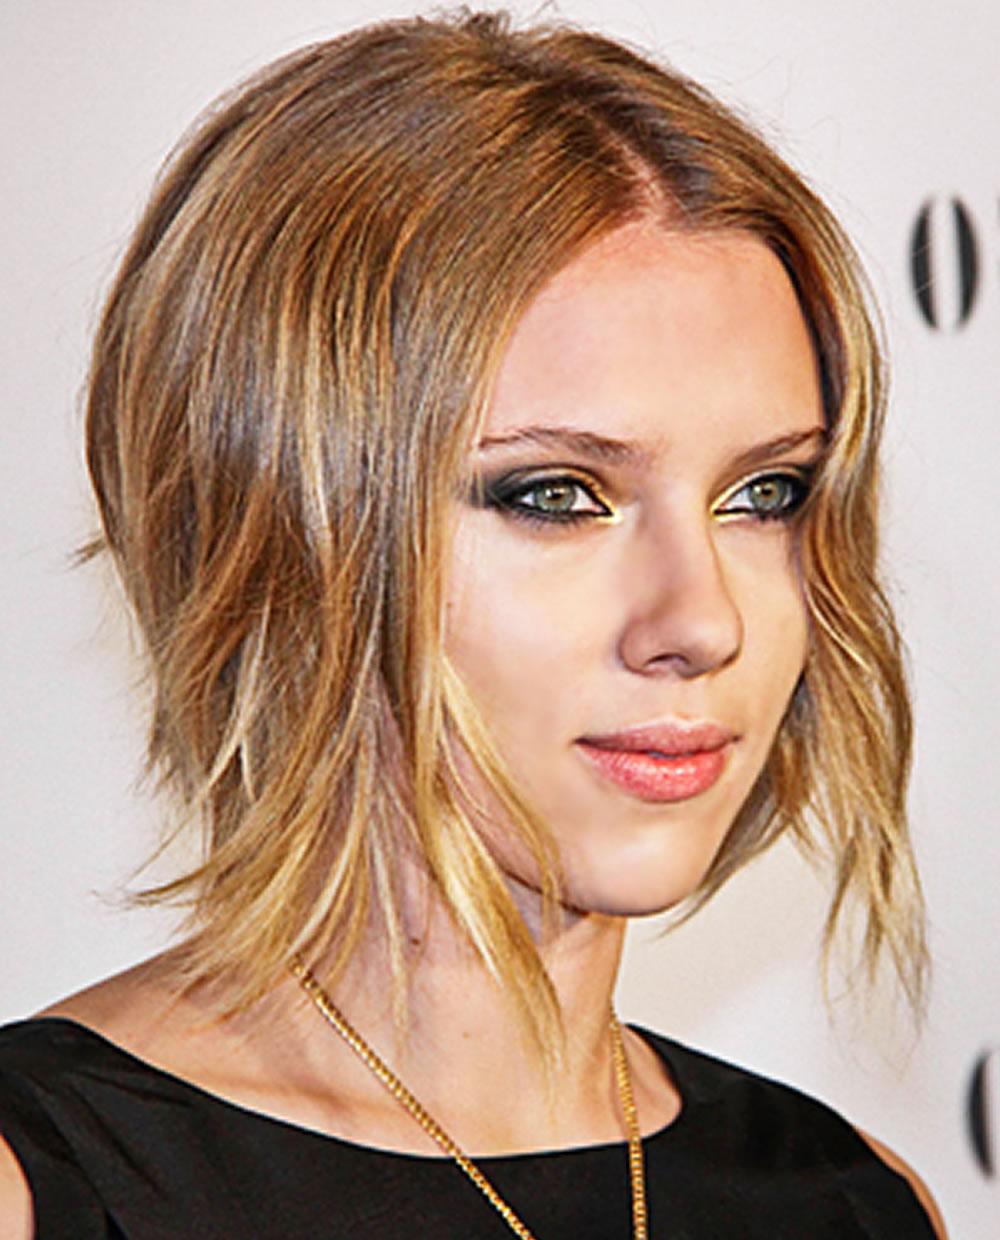 Well Liked Scarlett Johansson Medium Haircuts Intended For Scarlett Johansson's Hairstyles 2018 & Bob+pixie Haircuts For Short (View 5 of 20)